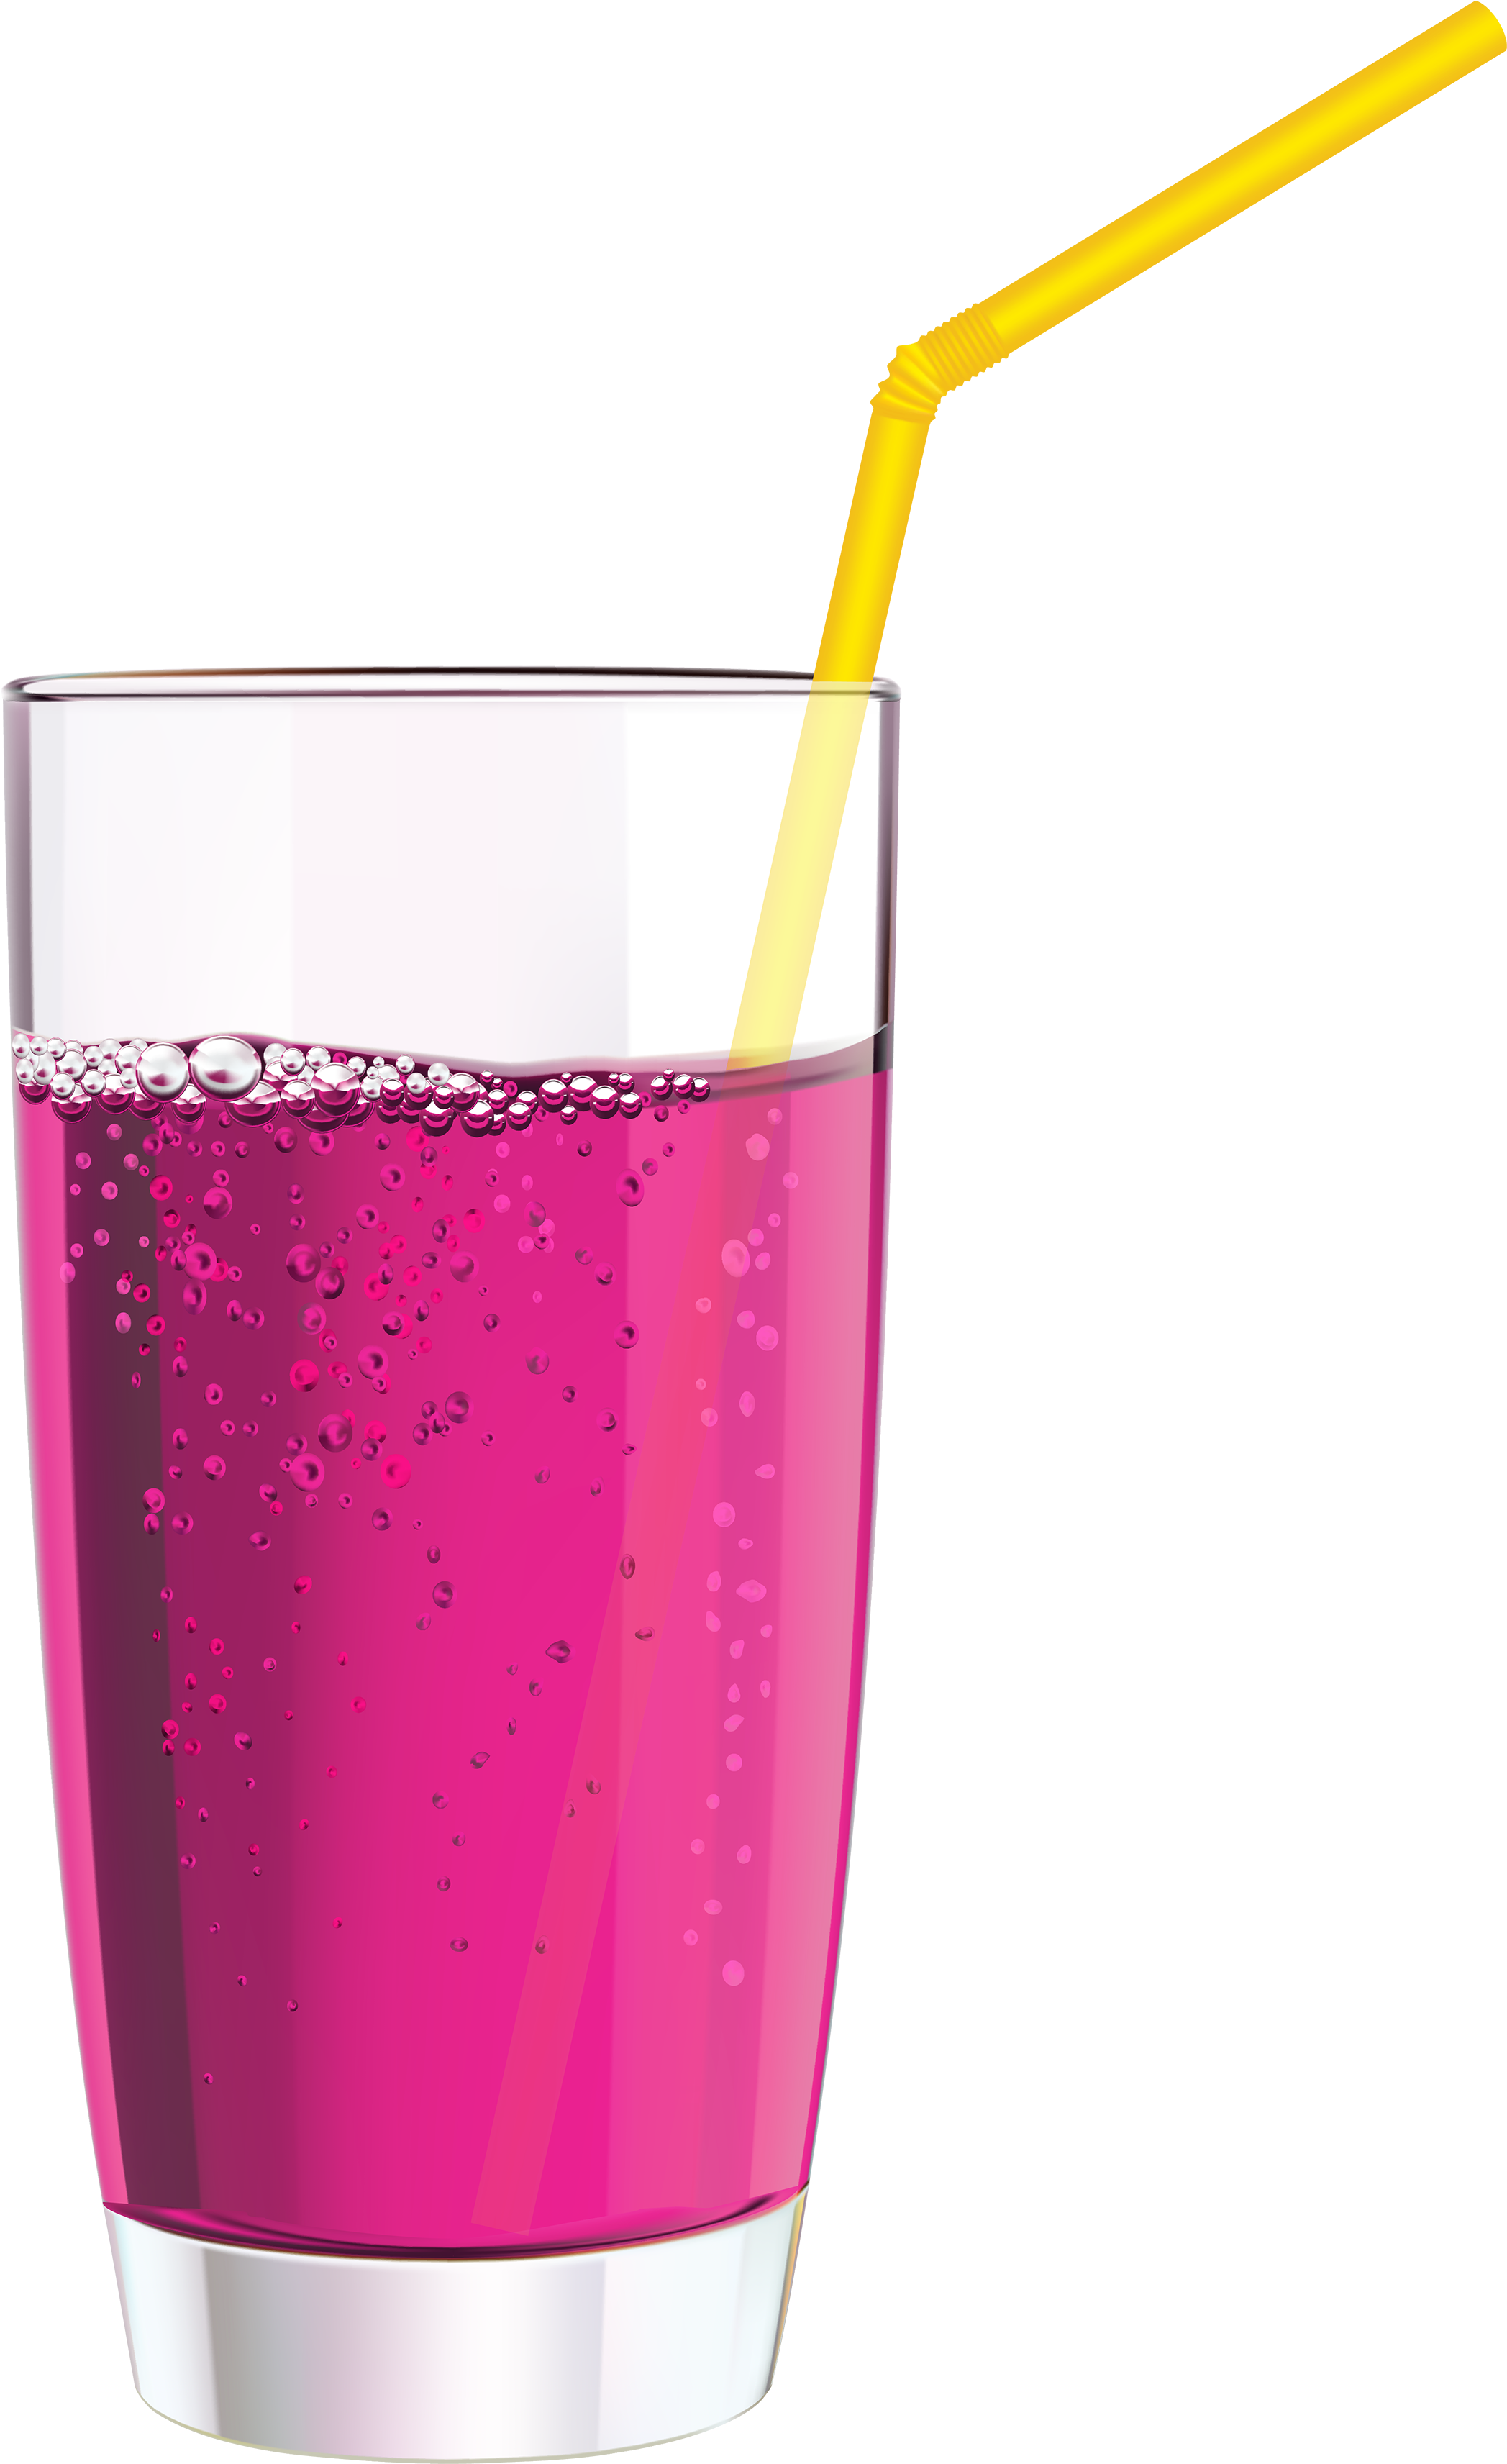 Download pink drink png. Straw clipart graphic free stock